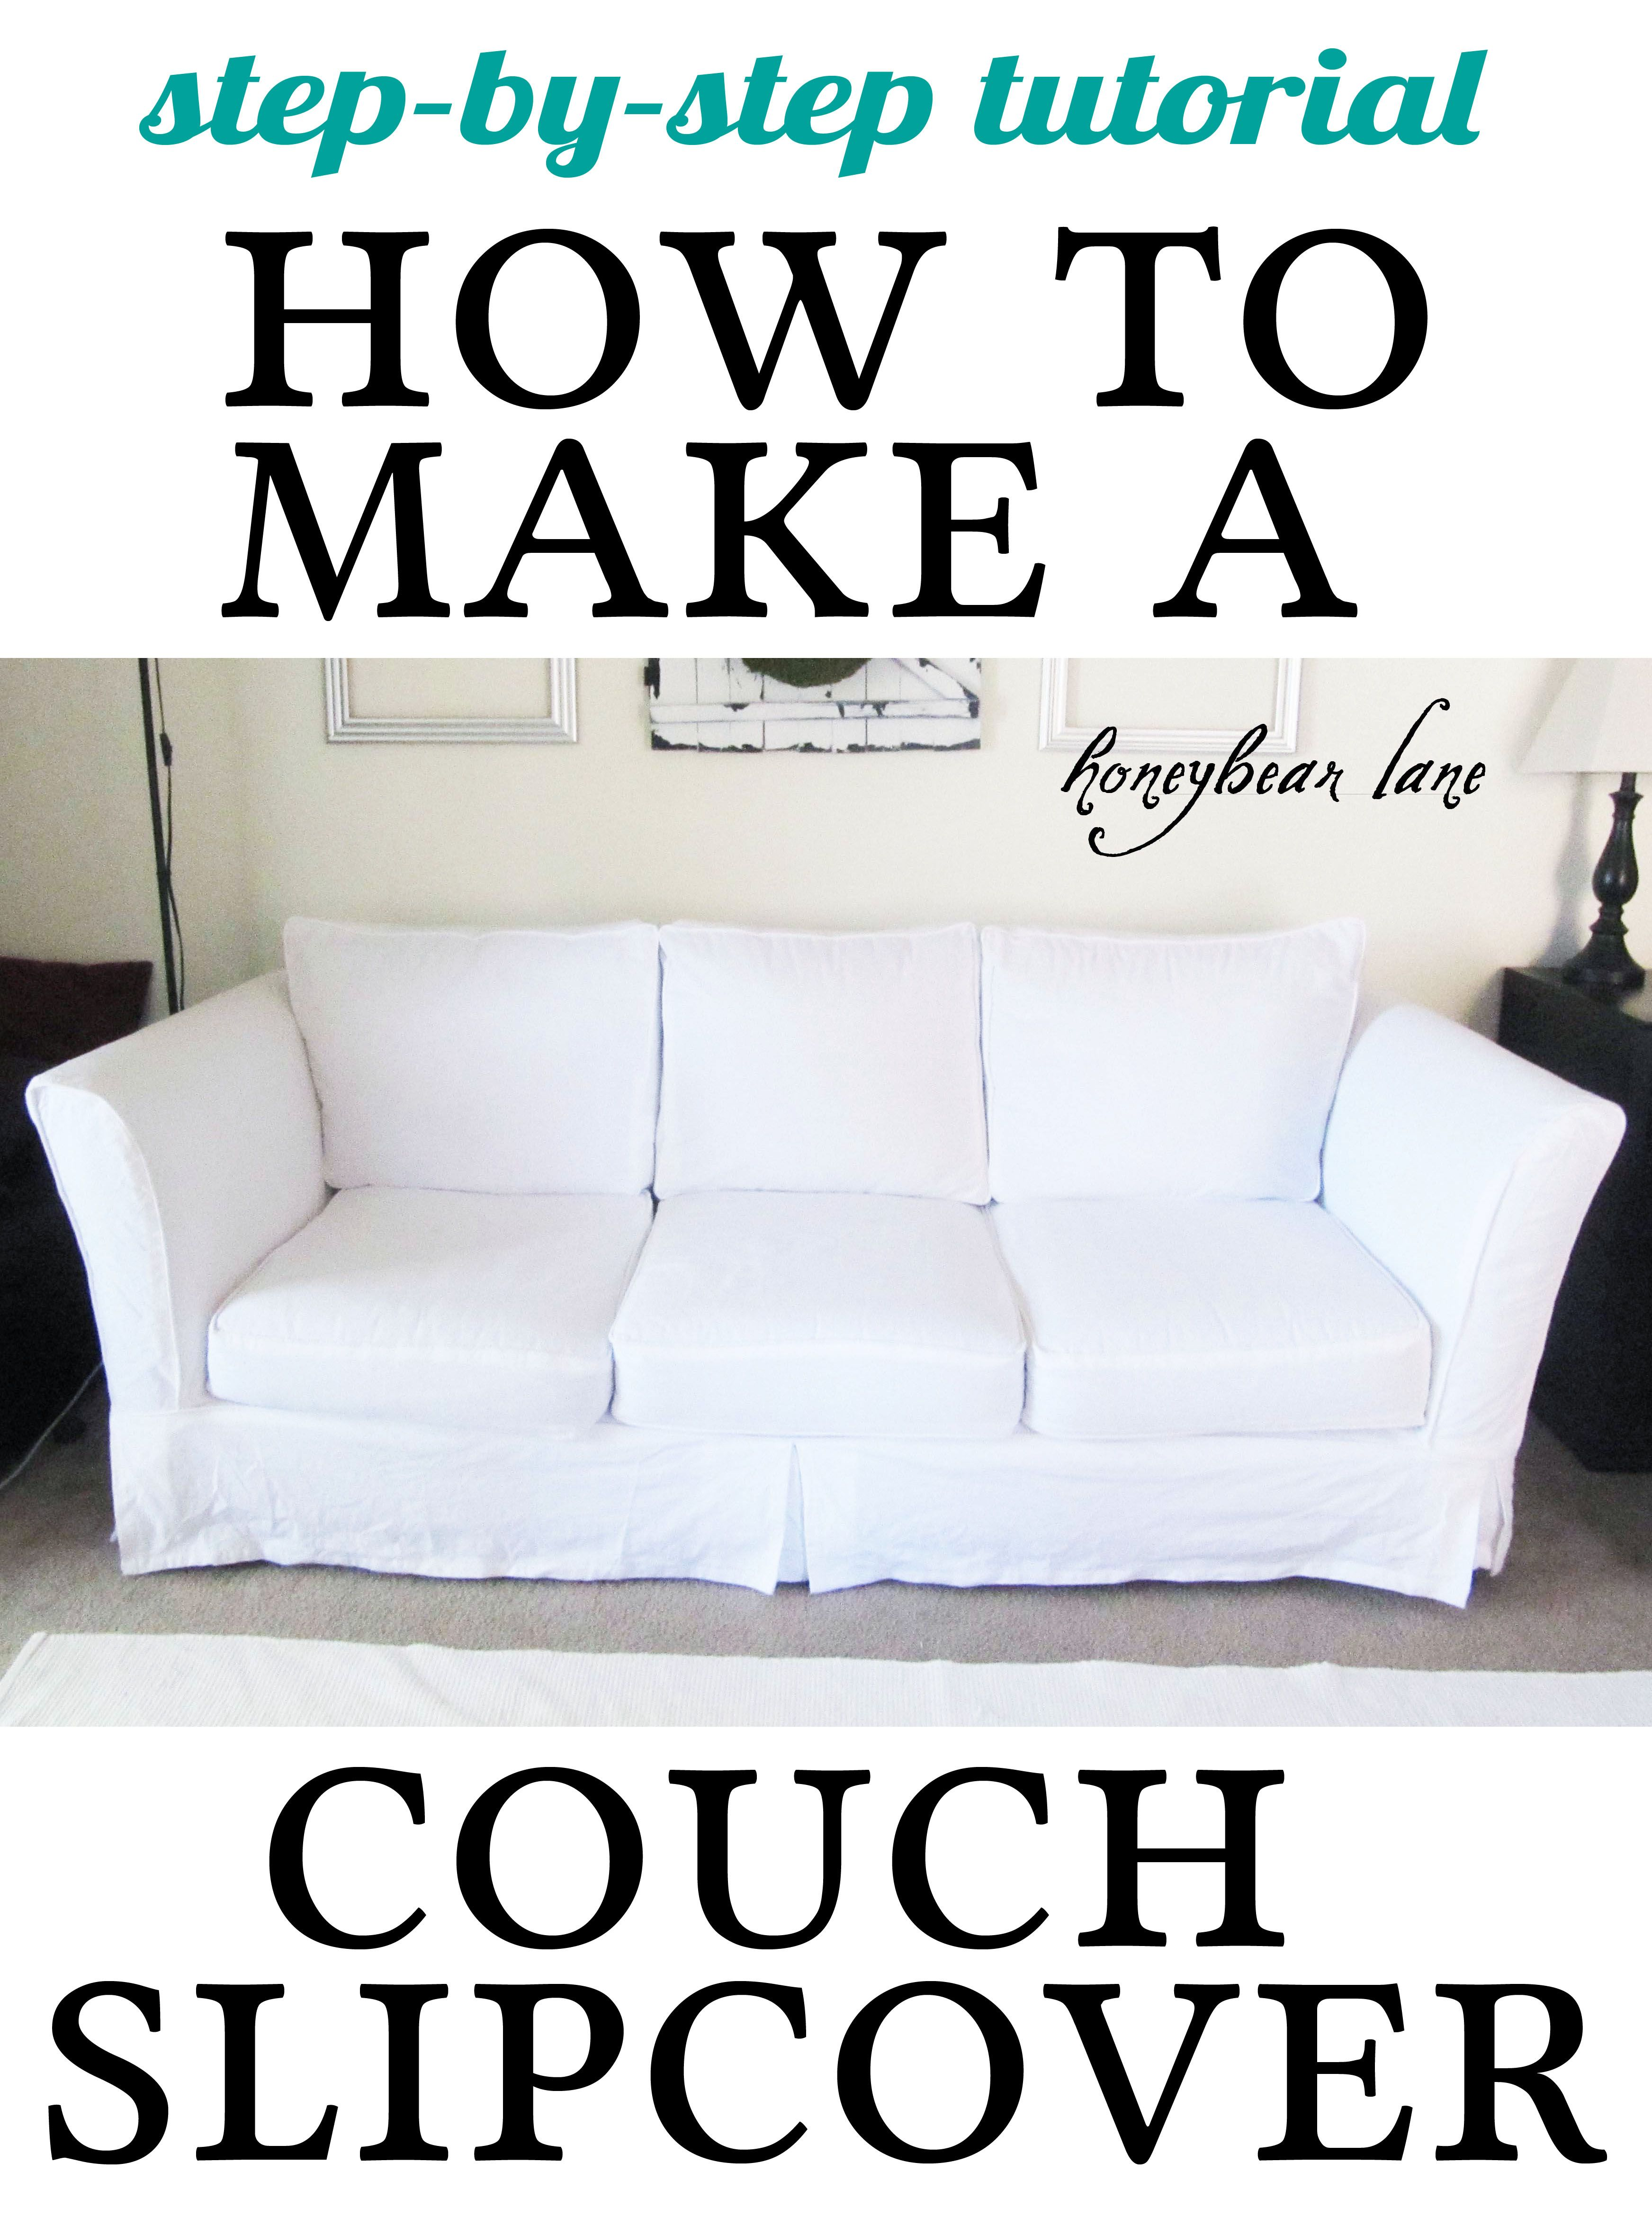 Superior How To Make A Couch Slipcover (Part 1)